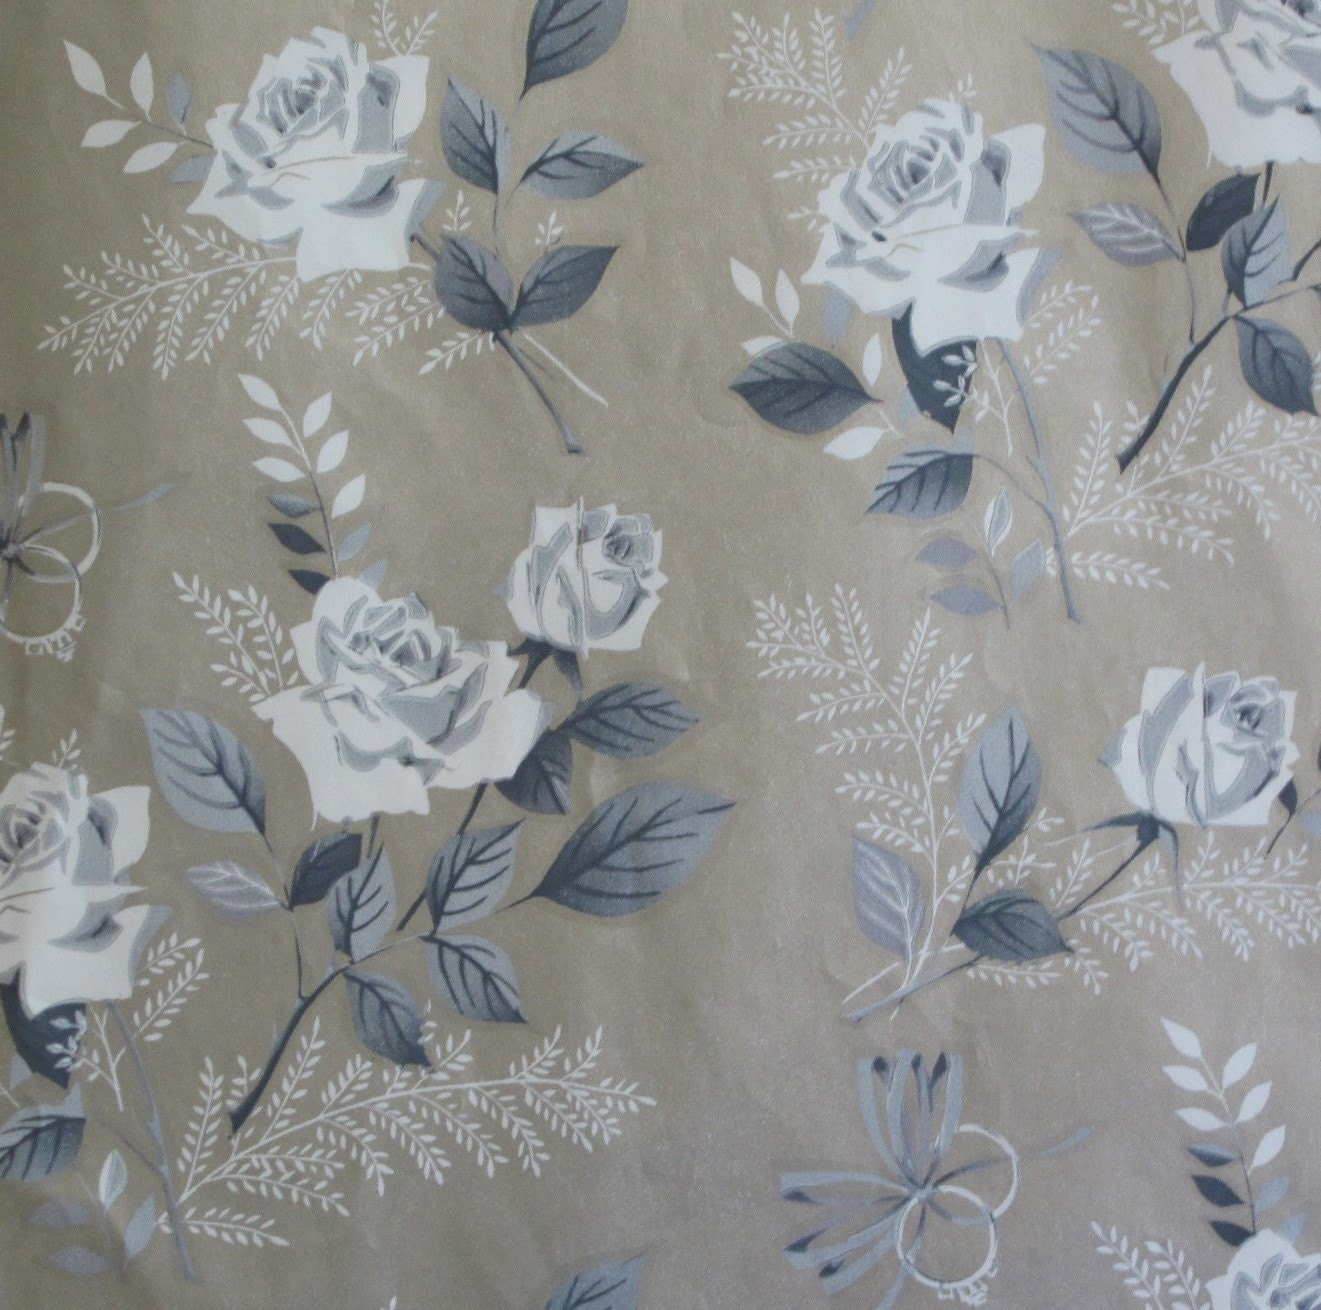 Wedding Gift Wrap : Vintage Laurel Wedding Gift Wrap Wrapping by MidCenturyAddiction